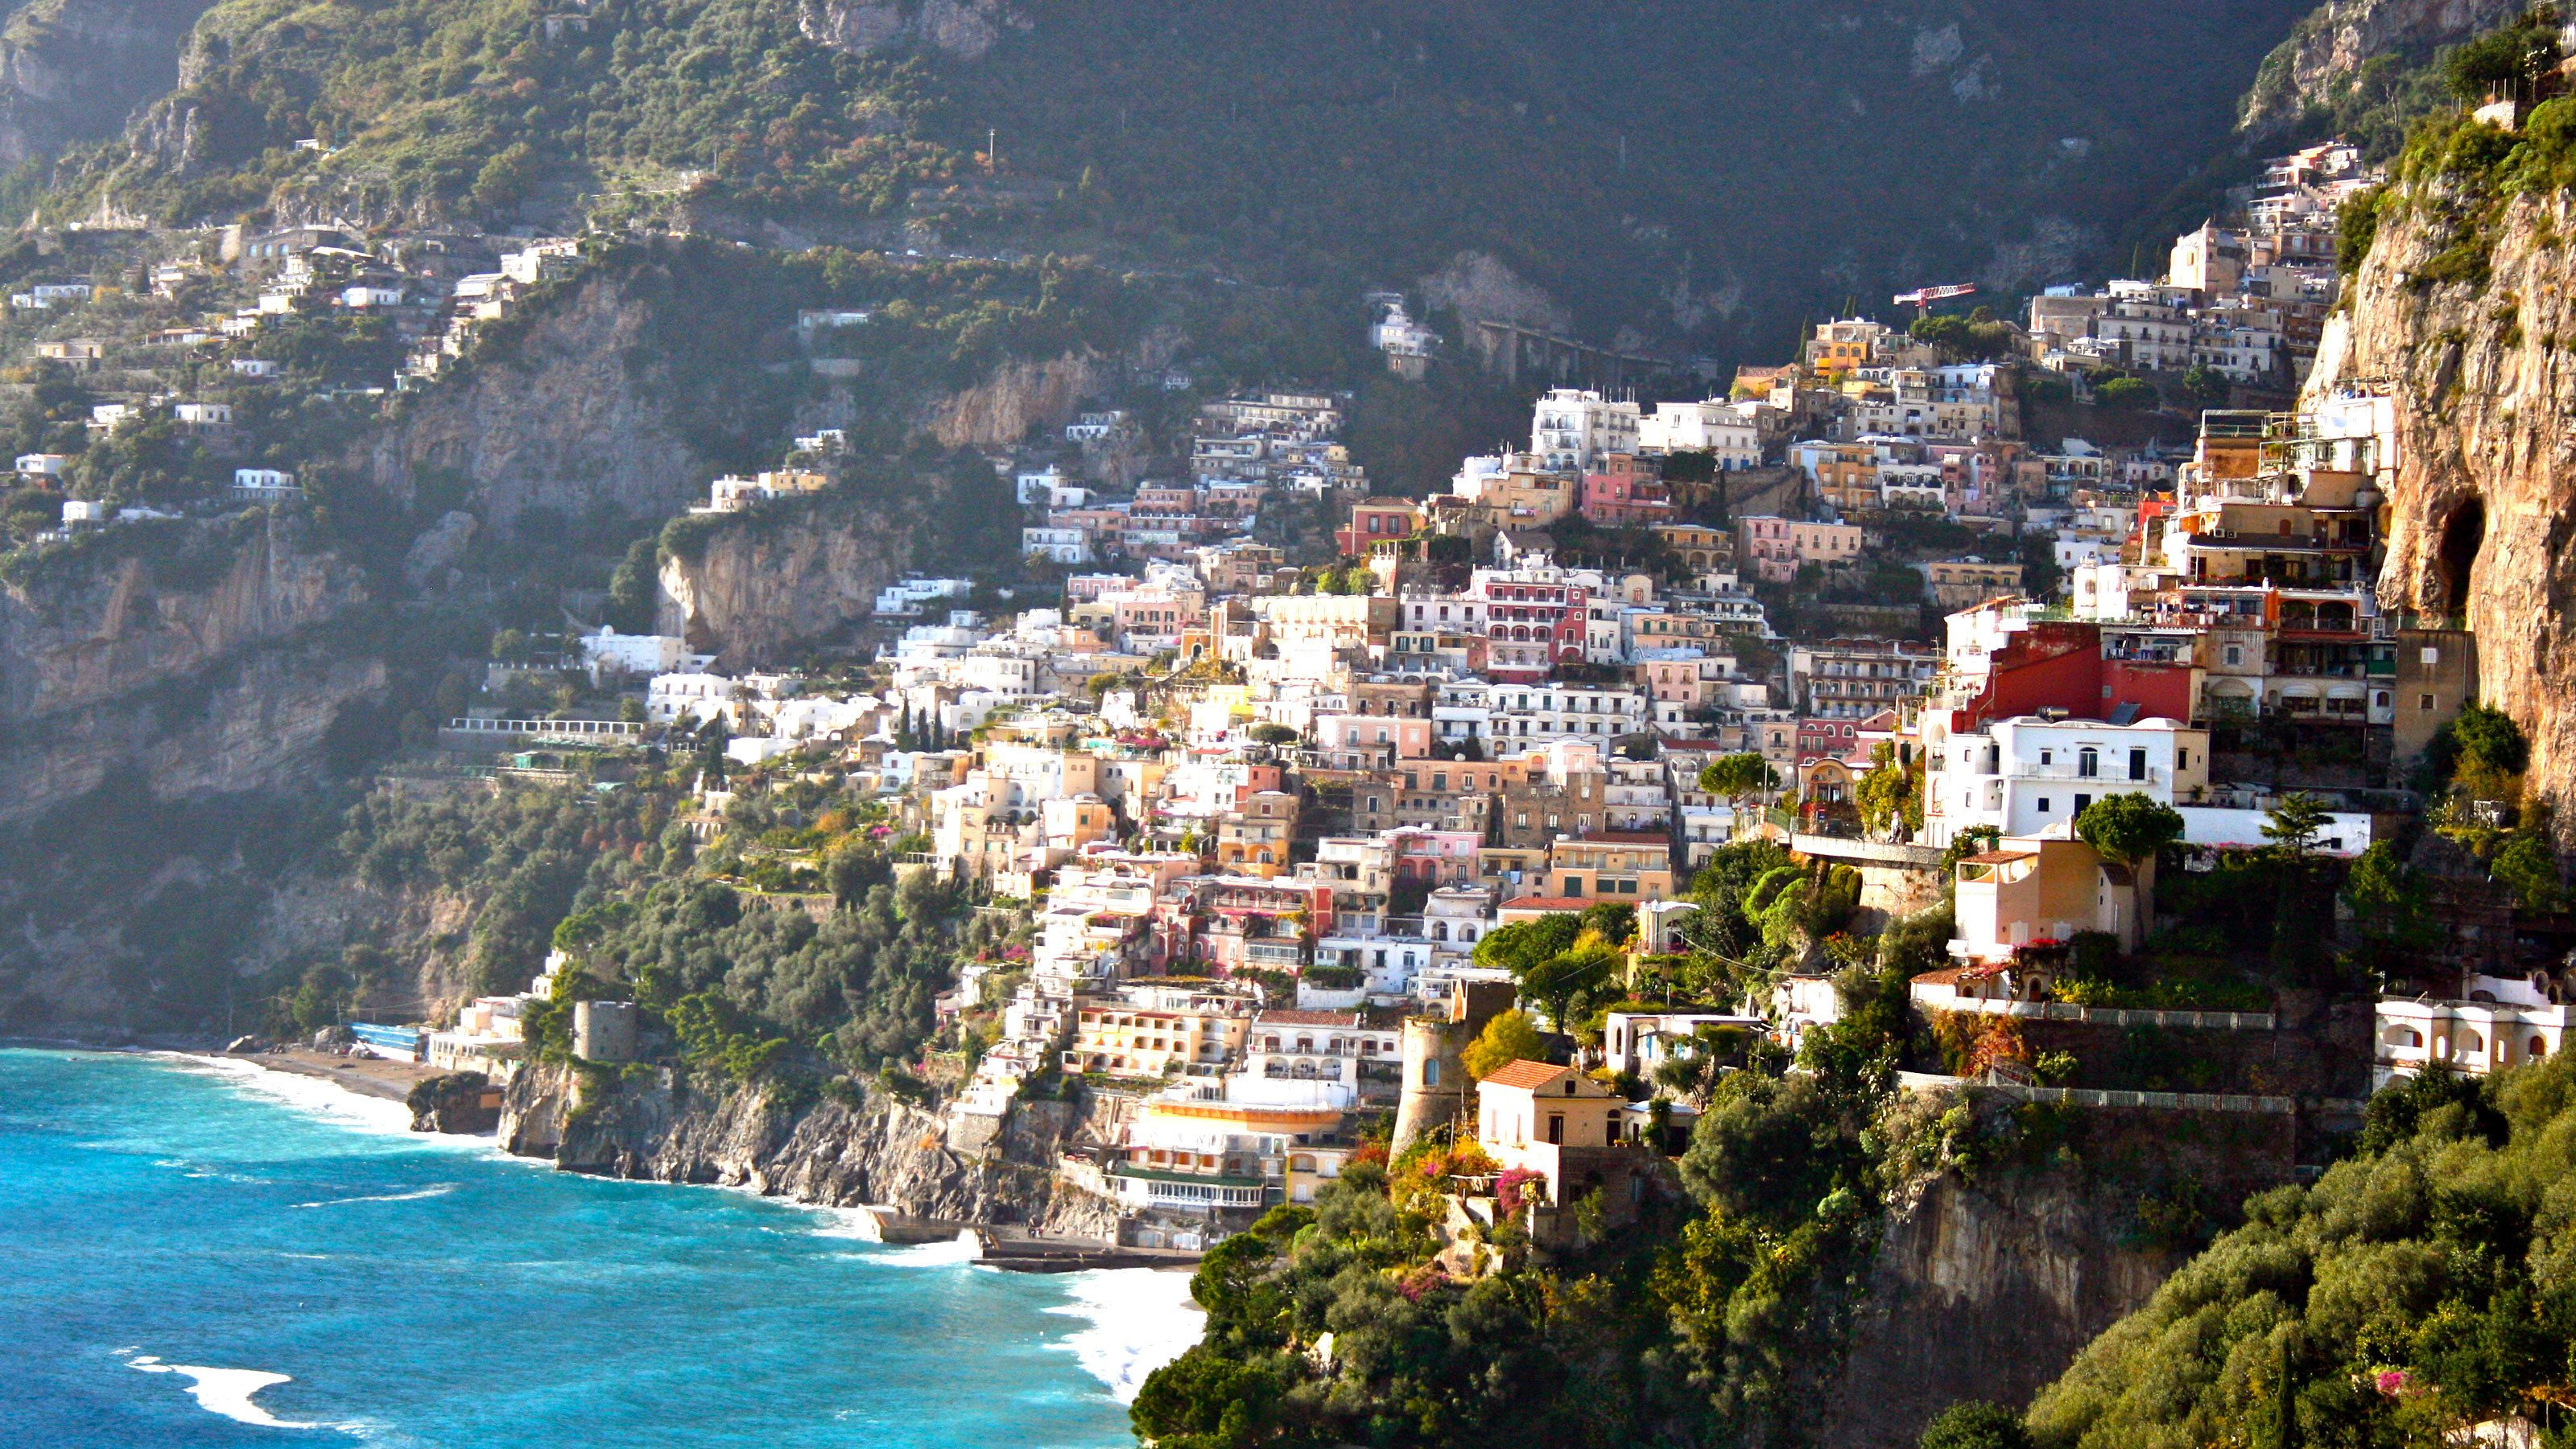 A city nestled into the cliffside on the Amalfi